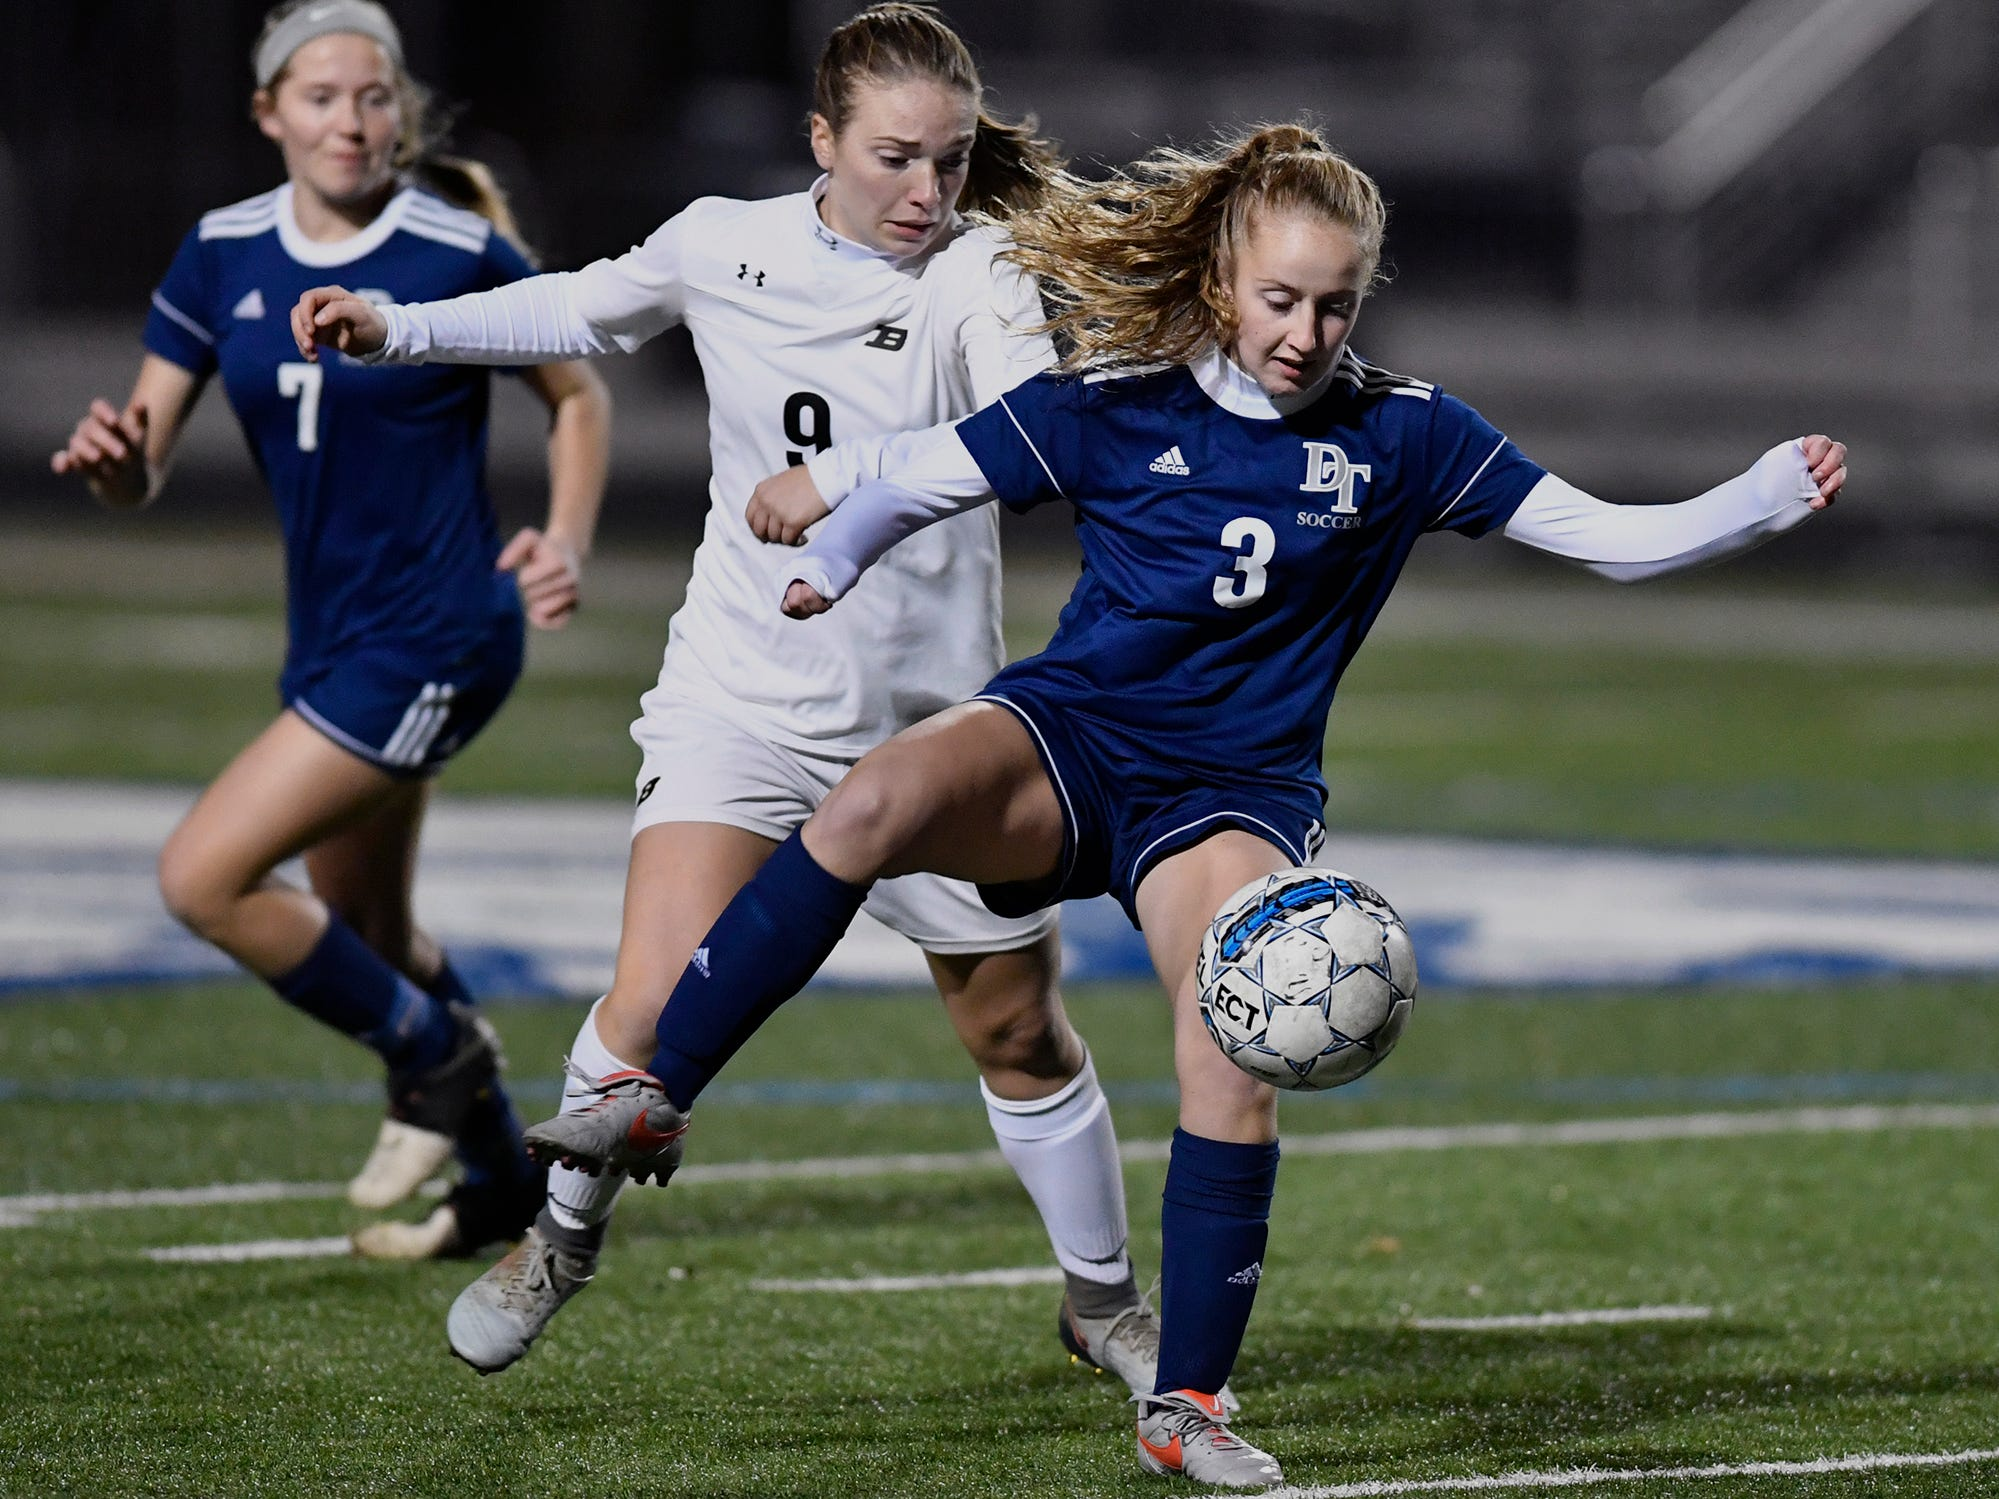 Caroline Muth of Dallastown blocks out Carly Stoner of Biglerville to control the ball during the York-Adams League Girls' Soccer Senior All-Star Game, Thursday, November 7, 2018. John A. Pavoncello photo